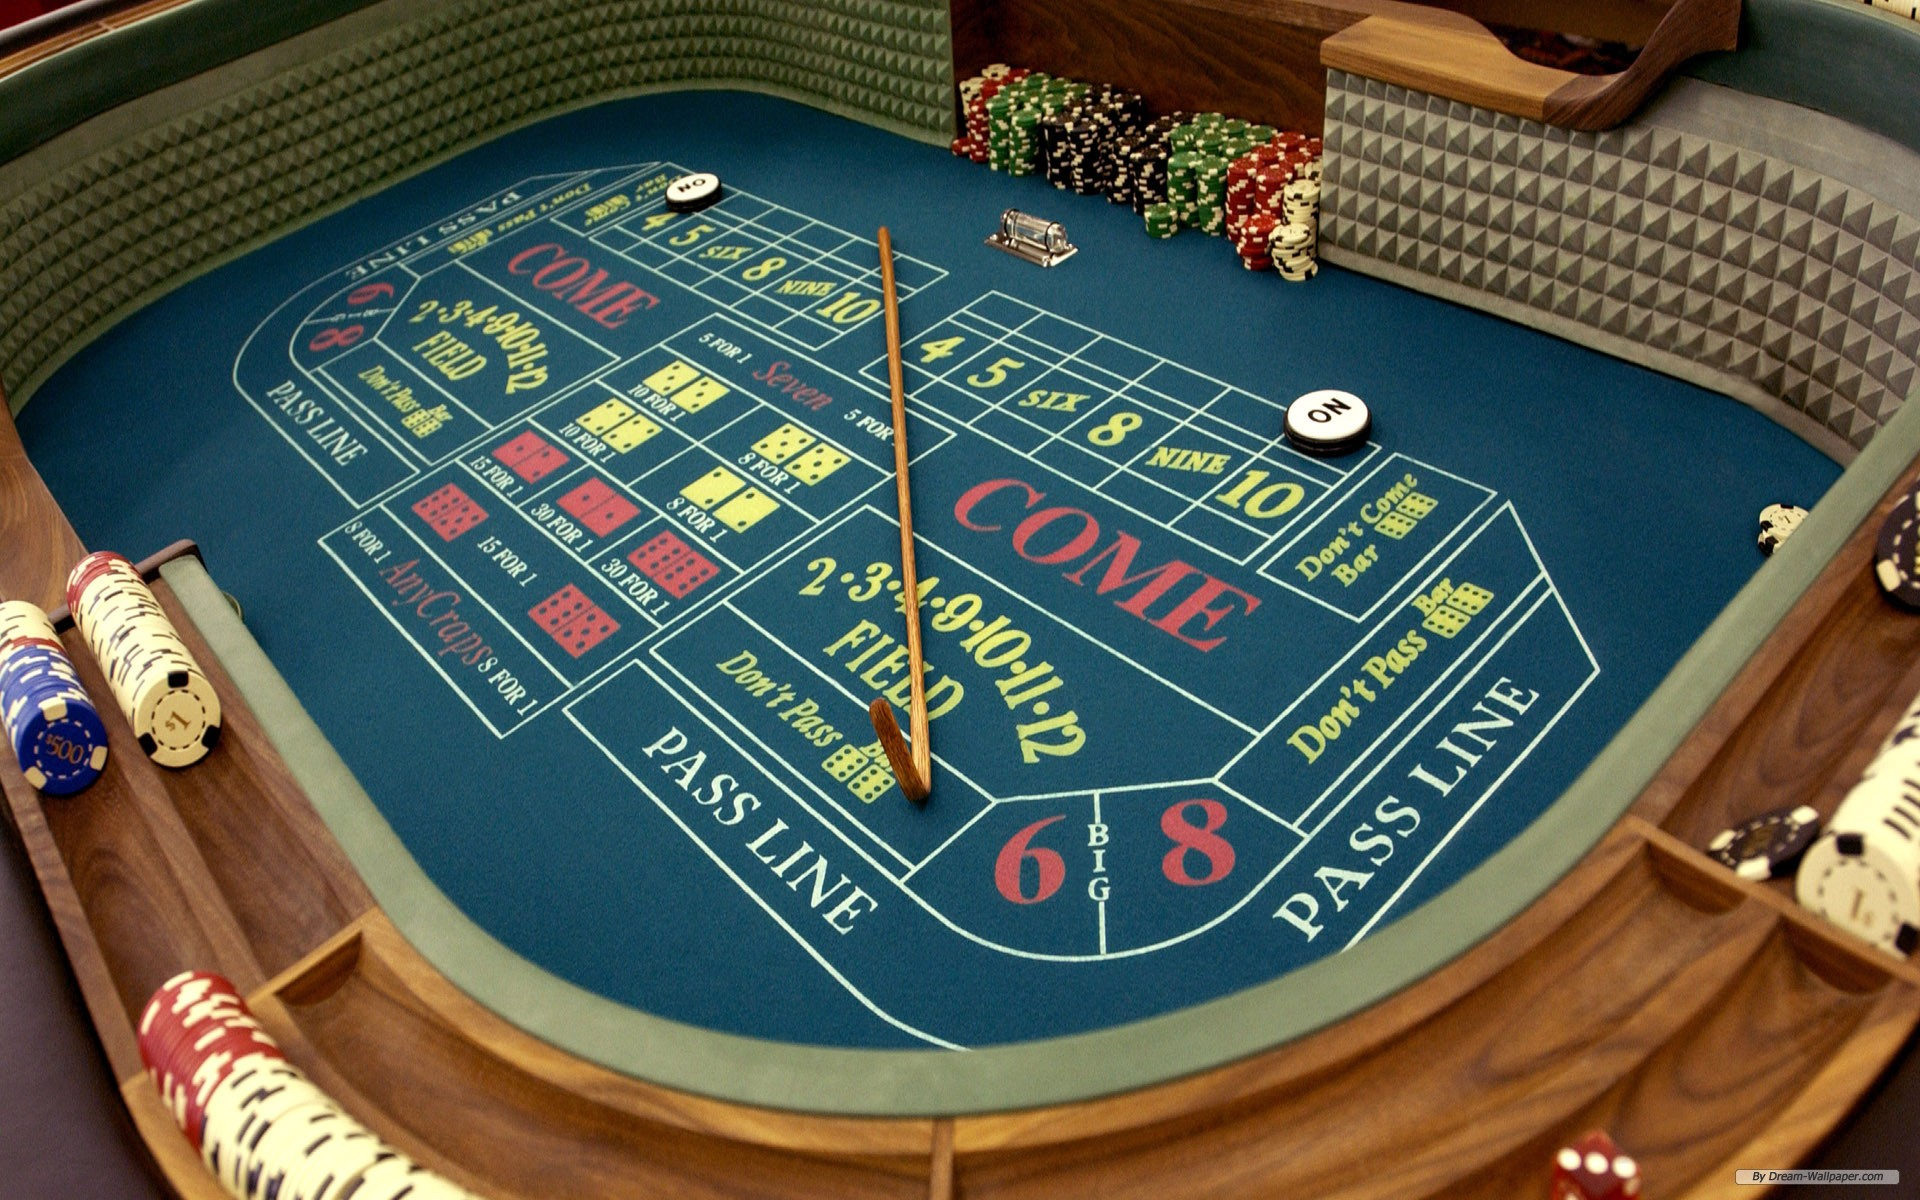 How To Prevent Wasting Cash With Online gambling?